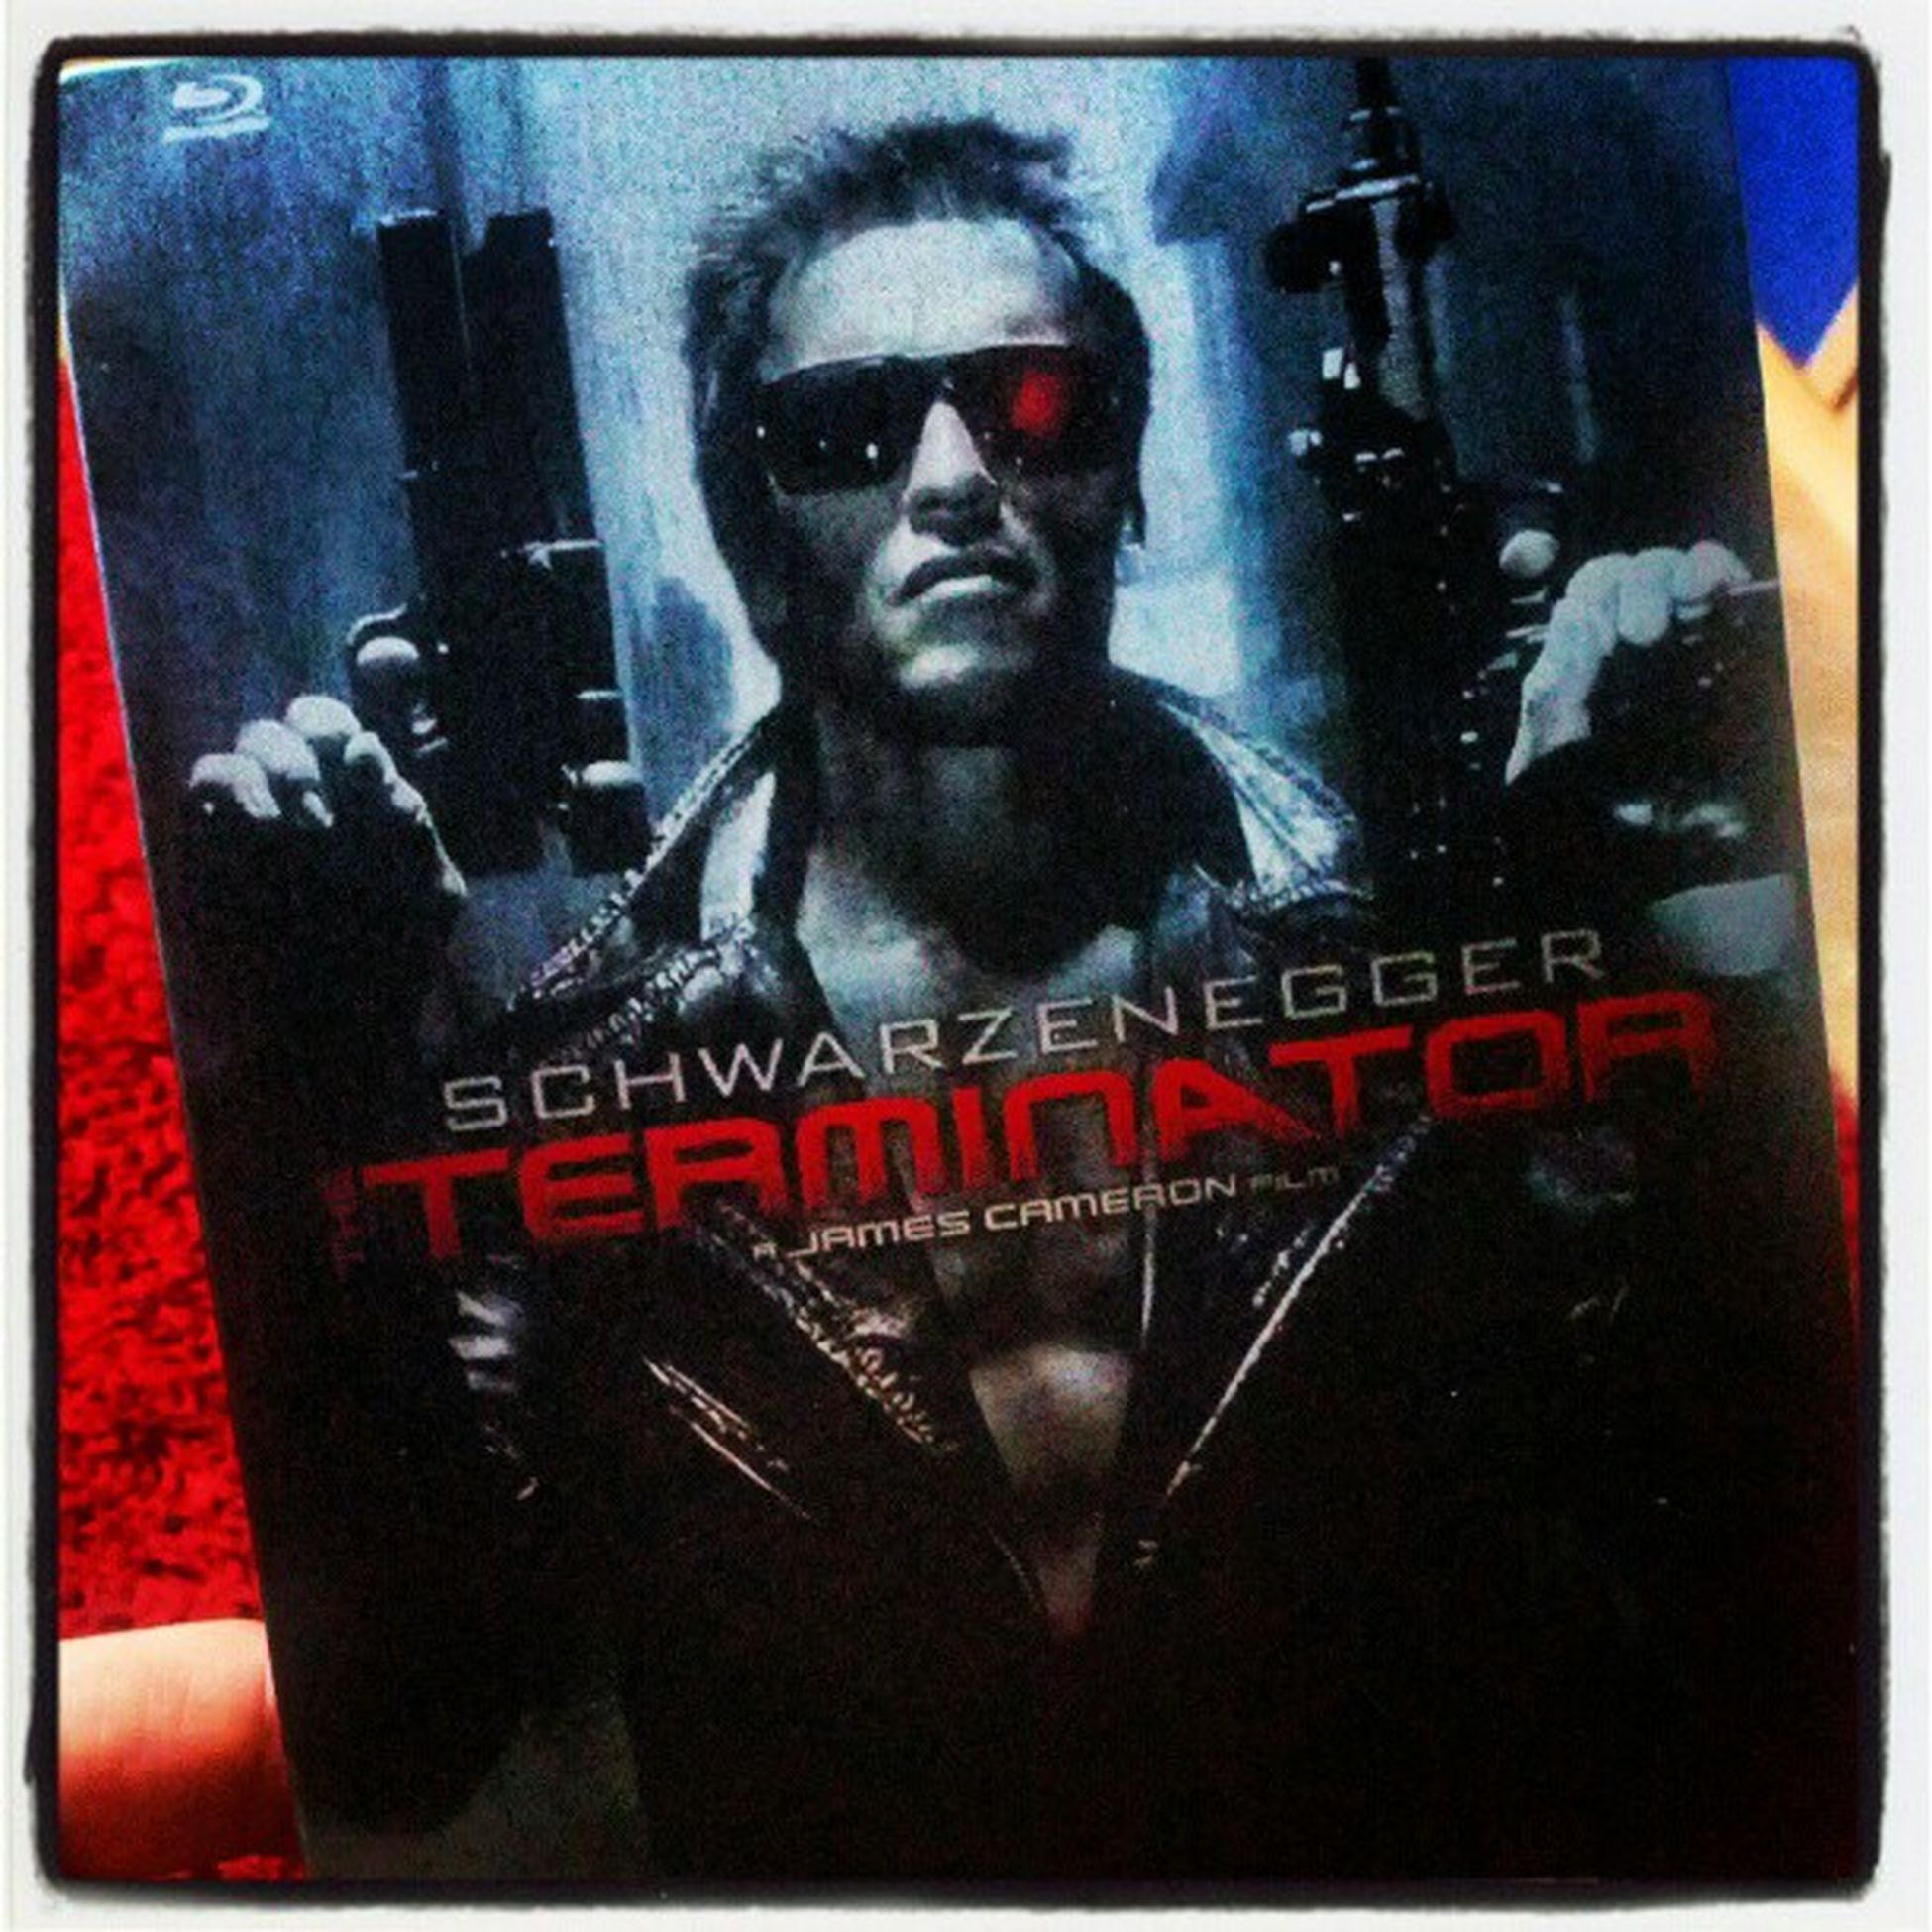 Thank you schwarzenegger for this #masterpiece of a #movie on #bluray in the #steelbook #edition. #i'll be #back. Now i am gonna #watch #it. MOVIE I Back Watch IT Masterpiece Edition Bluray Steelbook